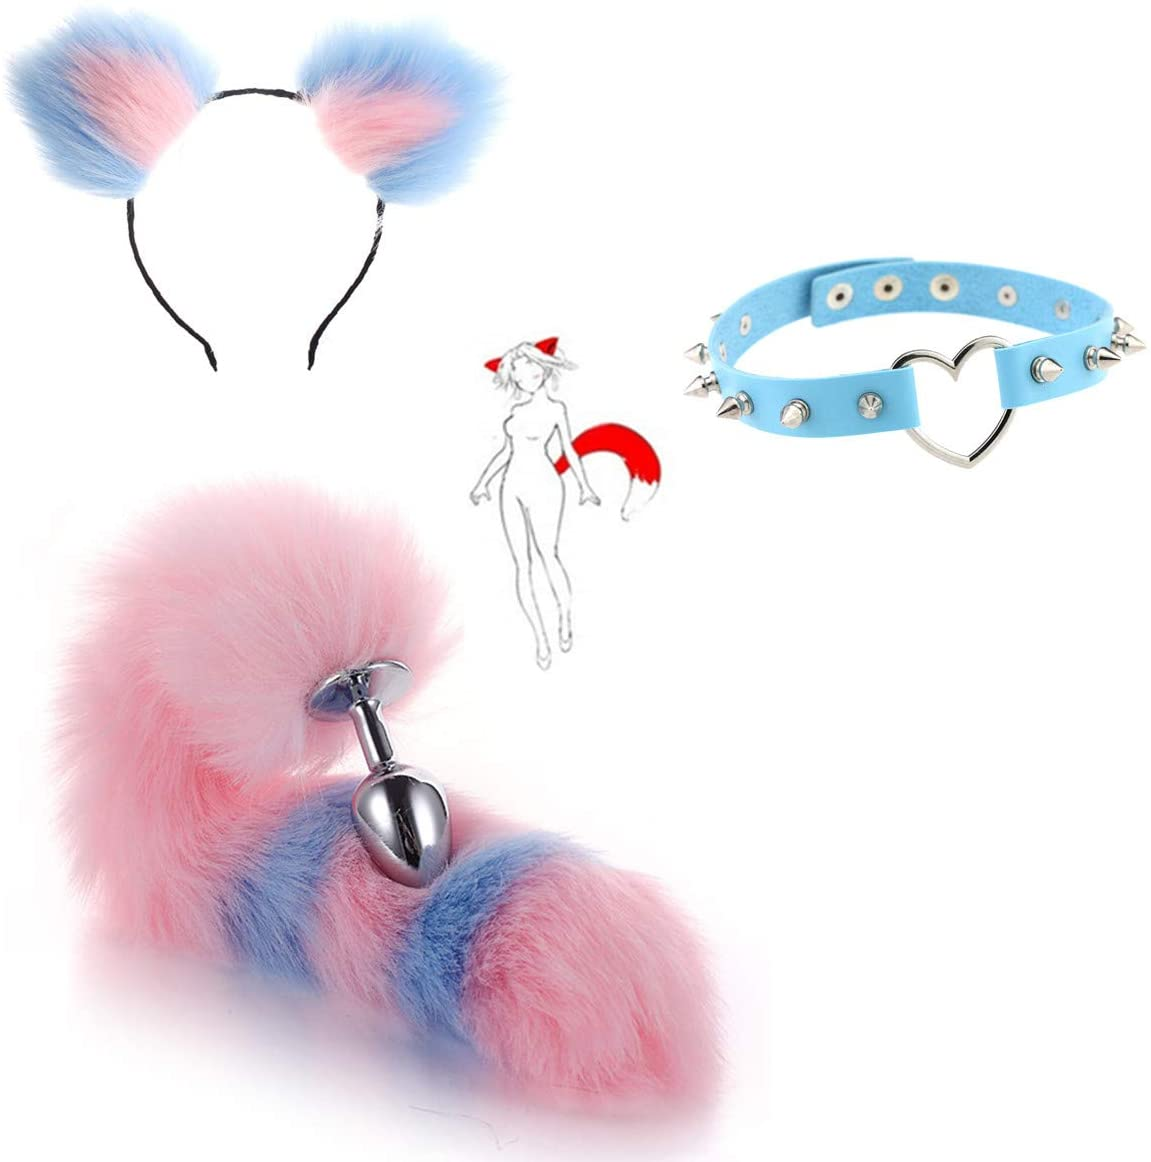 Exquisite Workmanship Furry Fox Tail & Headband & Heart-Shape Spikes Collar B-ütt an-âl Pl-ùg T-ö-ys Halloween Costume Cosplay Party Set - M